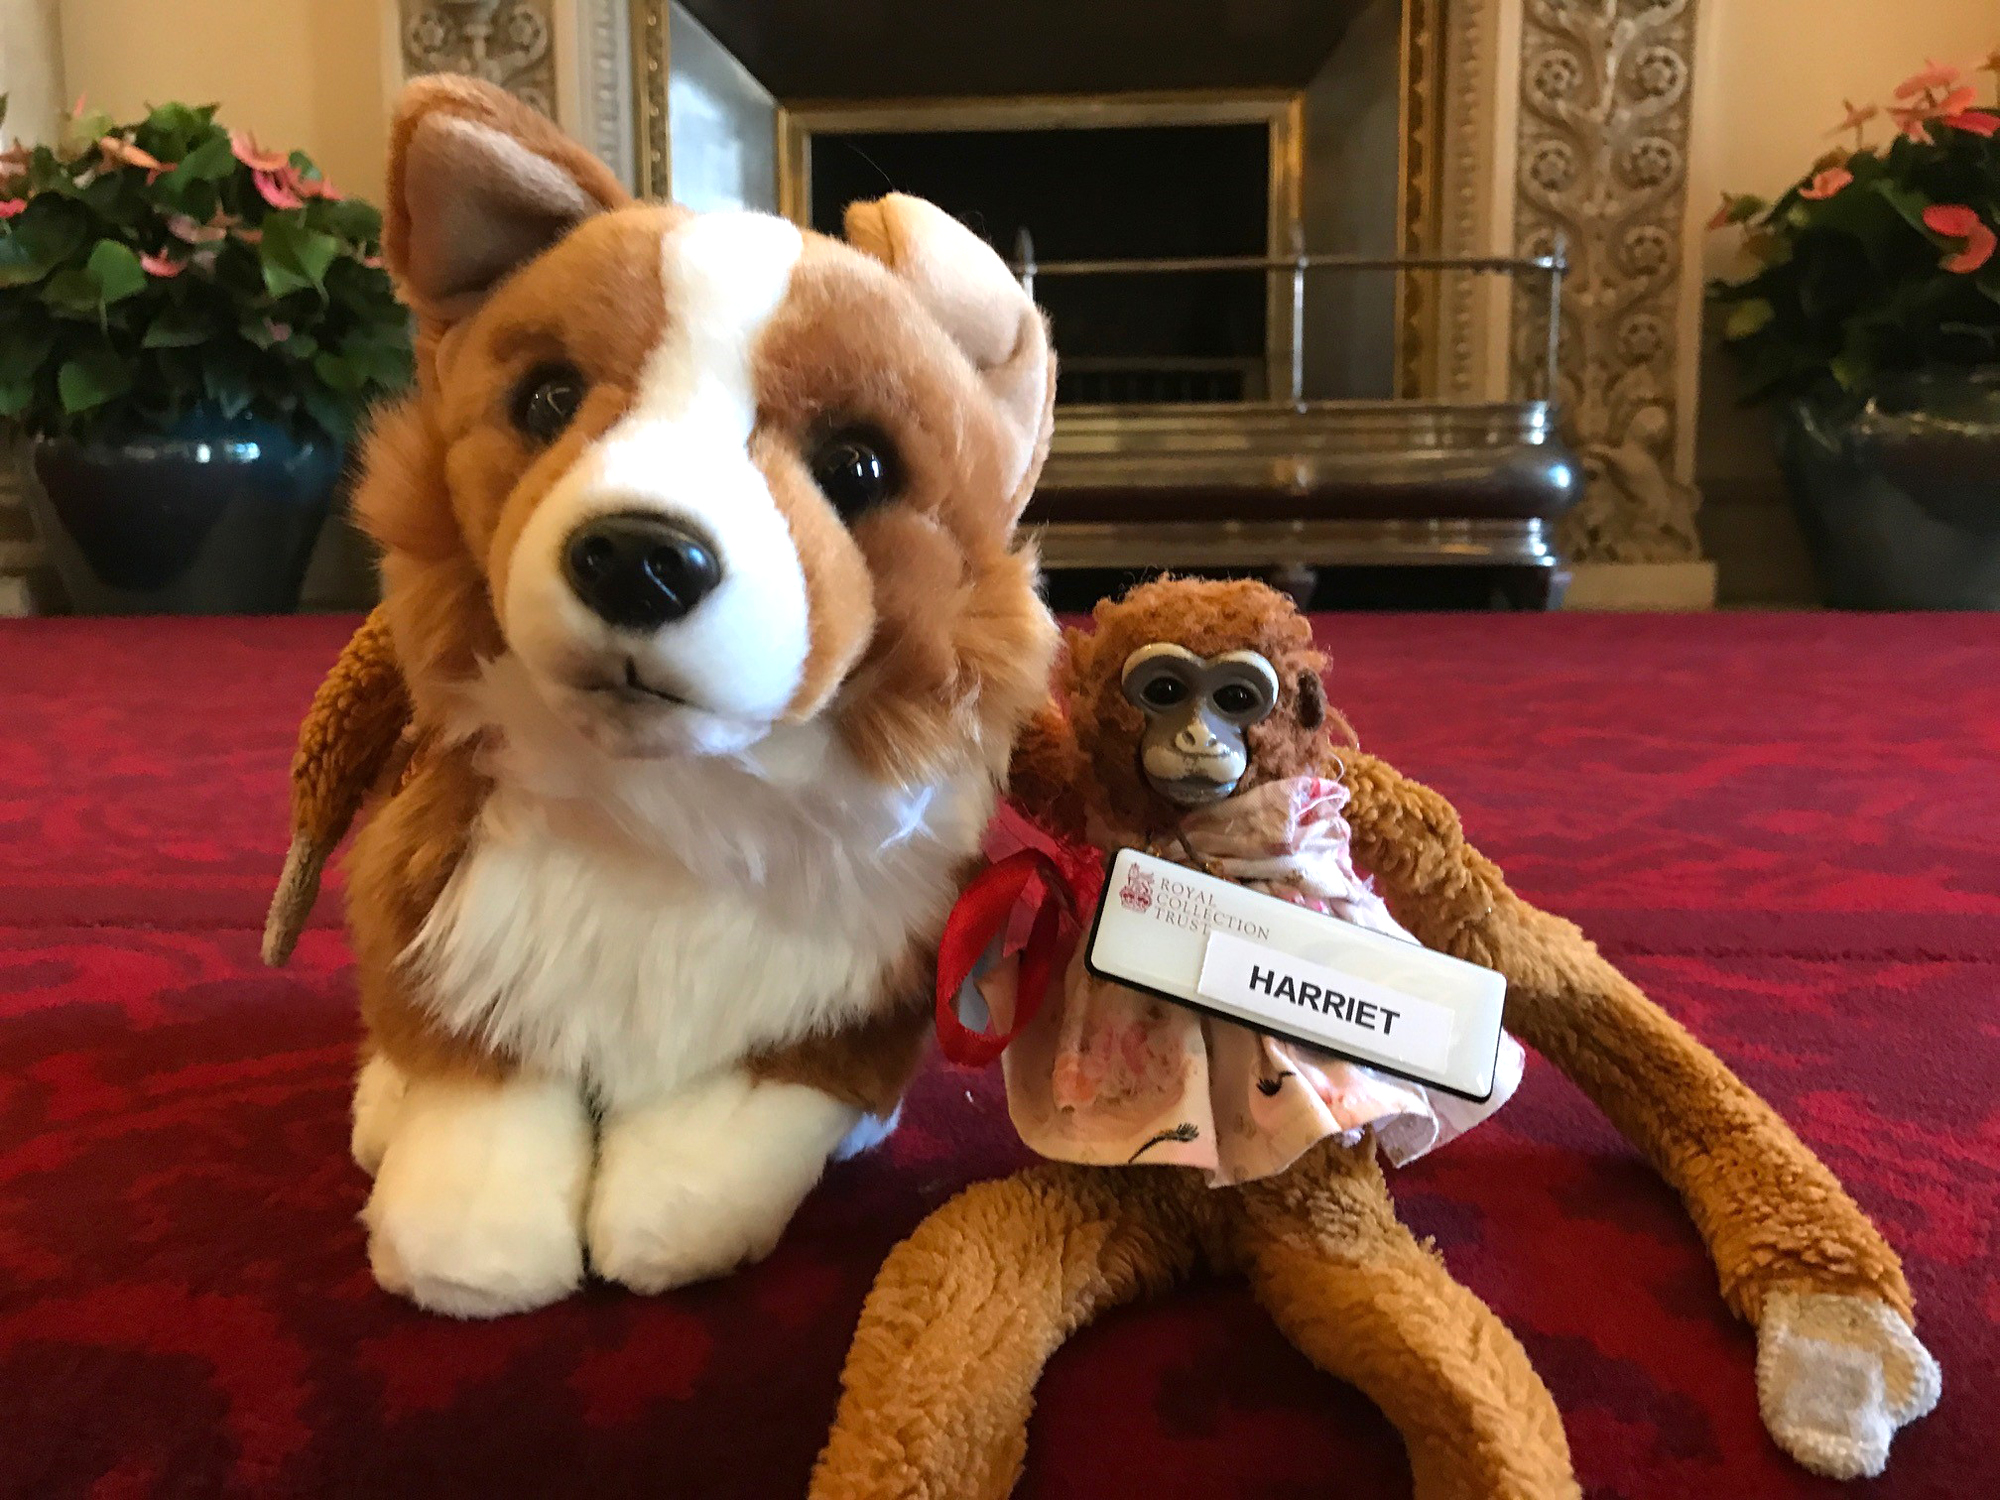 Missing Toy Monkey Found at Buckingham Palace and Returned to Schoolgirl After Letter to Queen